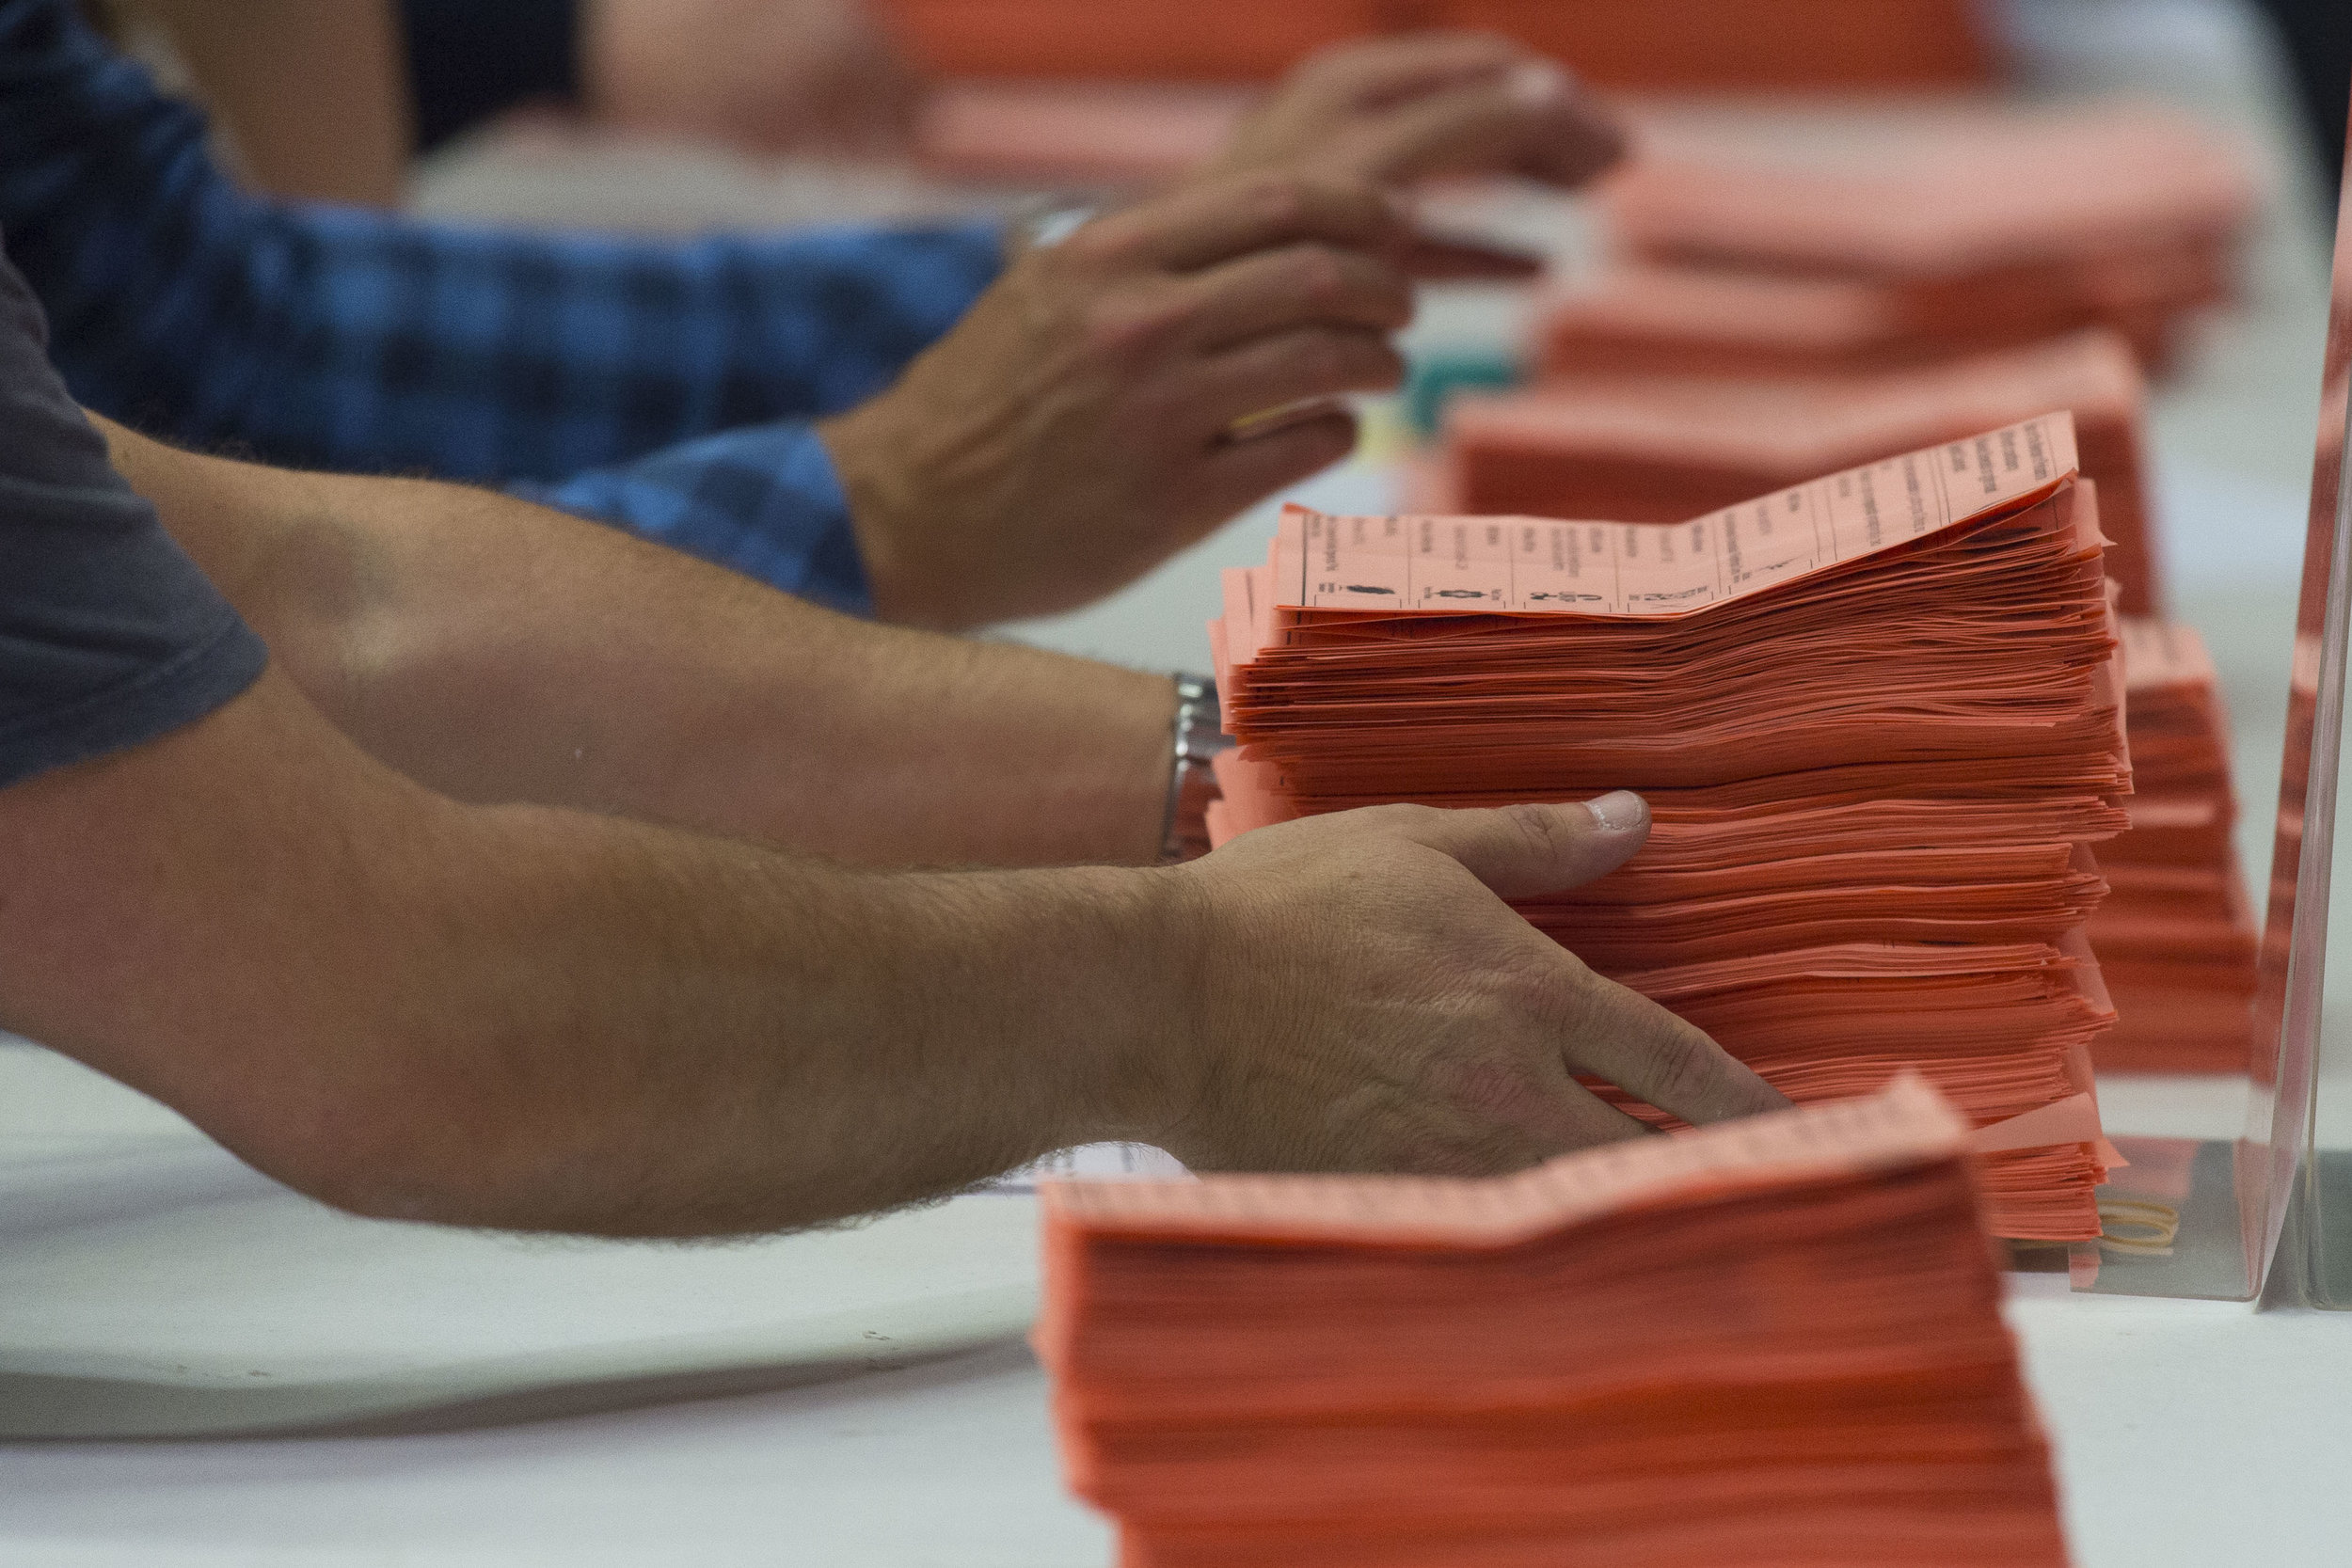 CARDIFF, UNITED KINGDOM - JUNE 09: Ballot papers are counted at the Sport Wales National Centre on June 9, 2017 in Cardiff, United Kingdom. After a snap election was called, the United Kingdom went to the polls yesterday following a closely fought election. The results from across the country are being counted and an overall result is expected in the early hours. (Photo by Matthew Horwood/Getty Images)